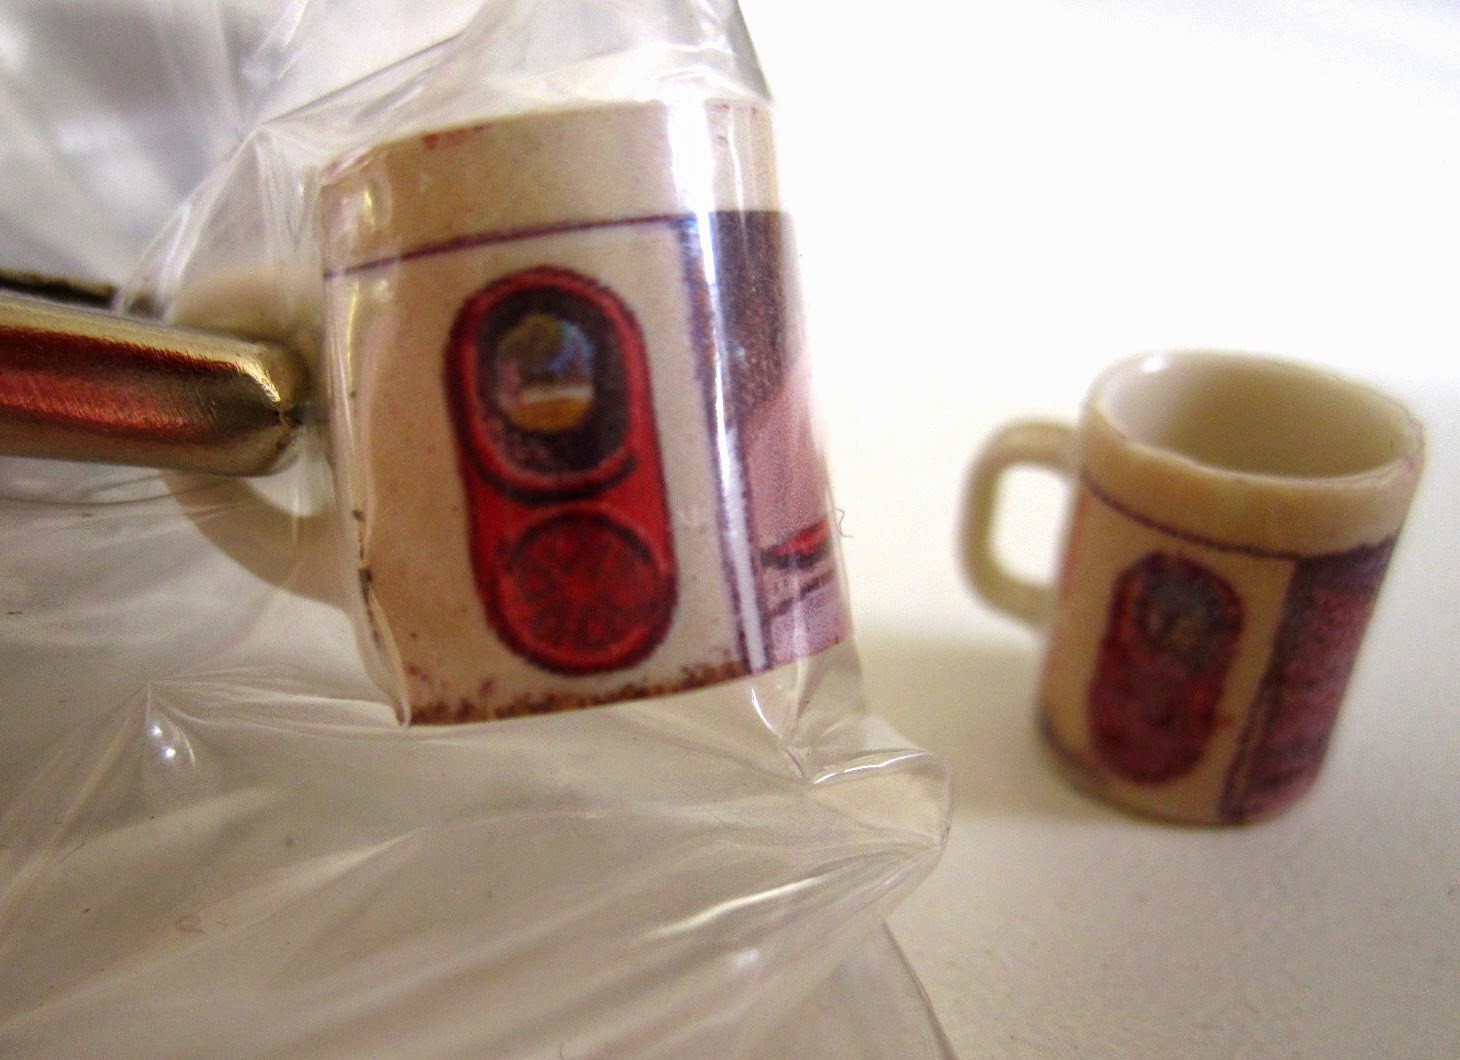 Two modern dolls' house miniature mugs with a design of a Canberra bus shelter. On the left is the (clearer) photo version, clamped to dry. On the right is the (less clear) decal version.